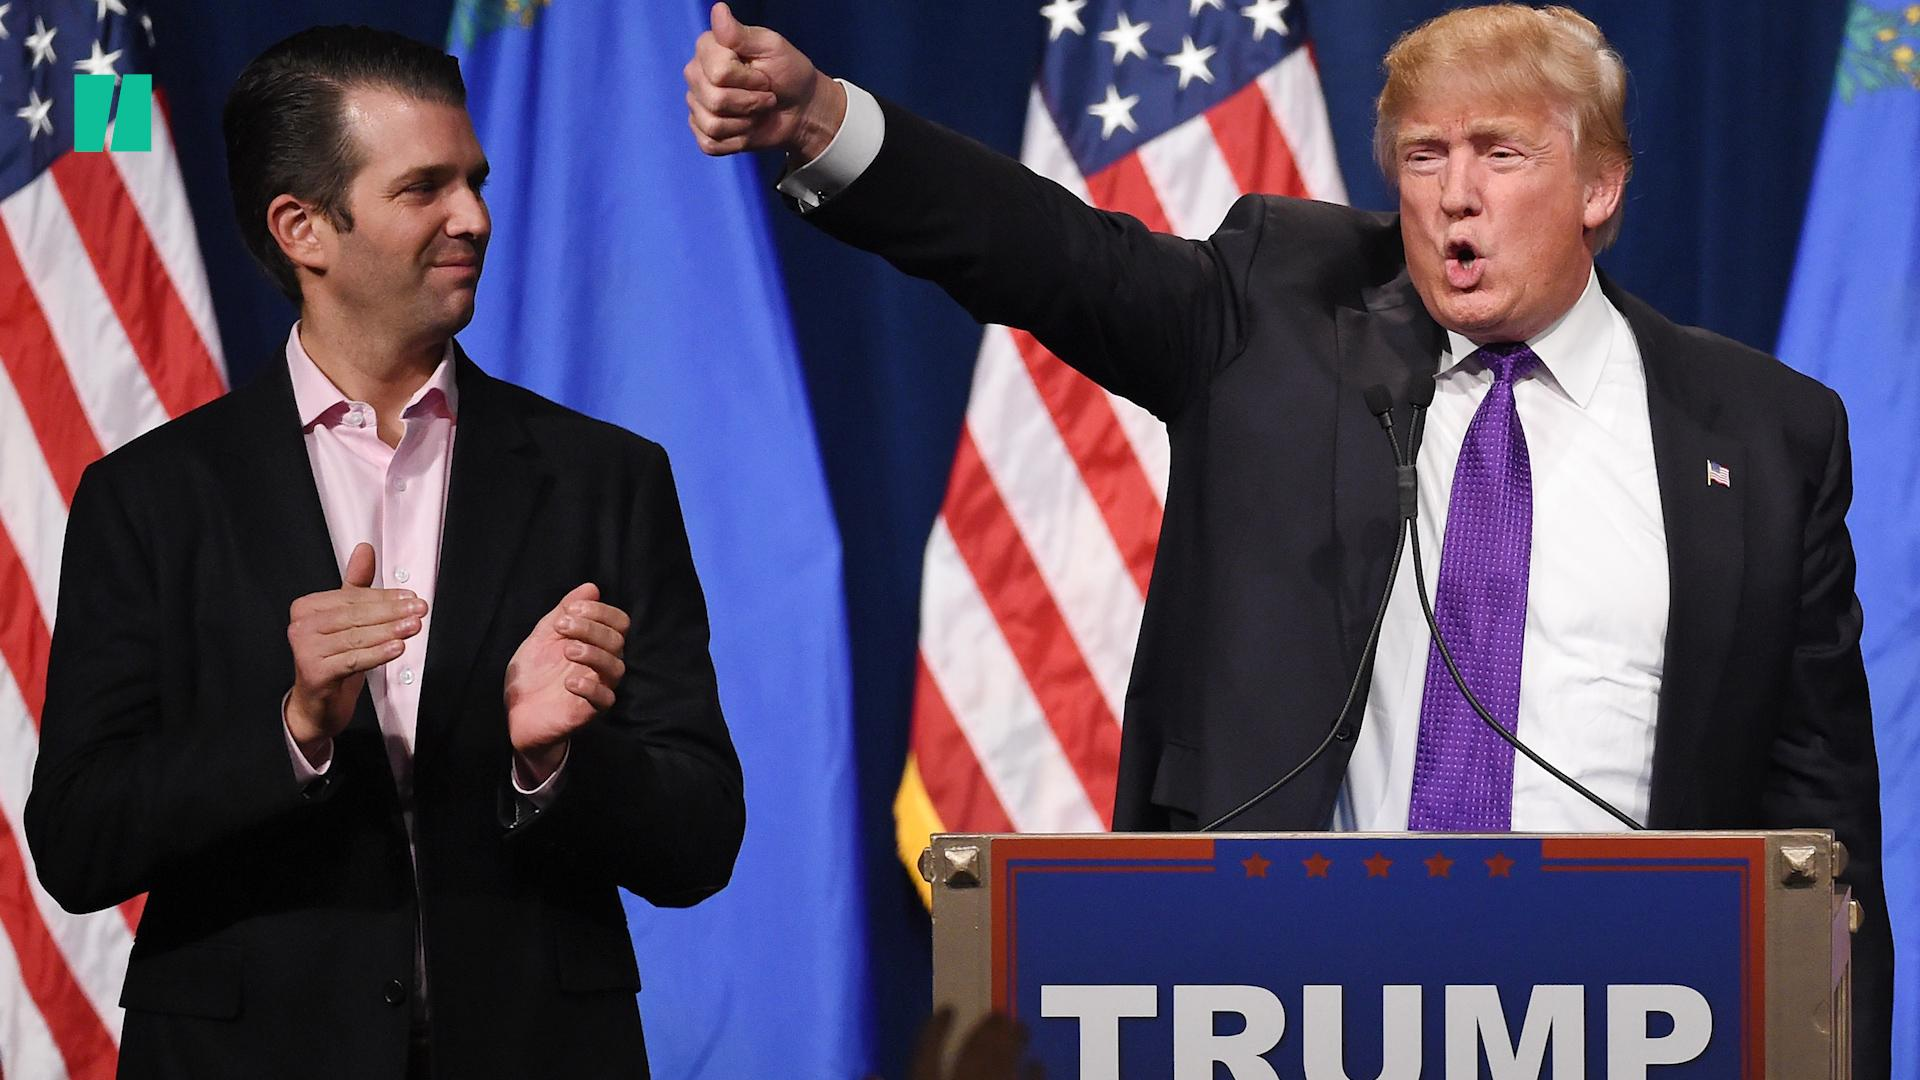 World's 'Saddest' Rally? Donald Trump Jr. Mocked For Speaking To Mostly Empty Arena